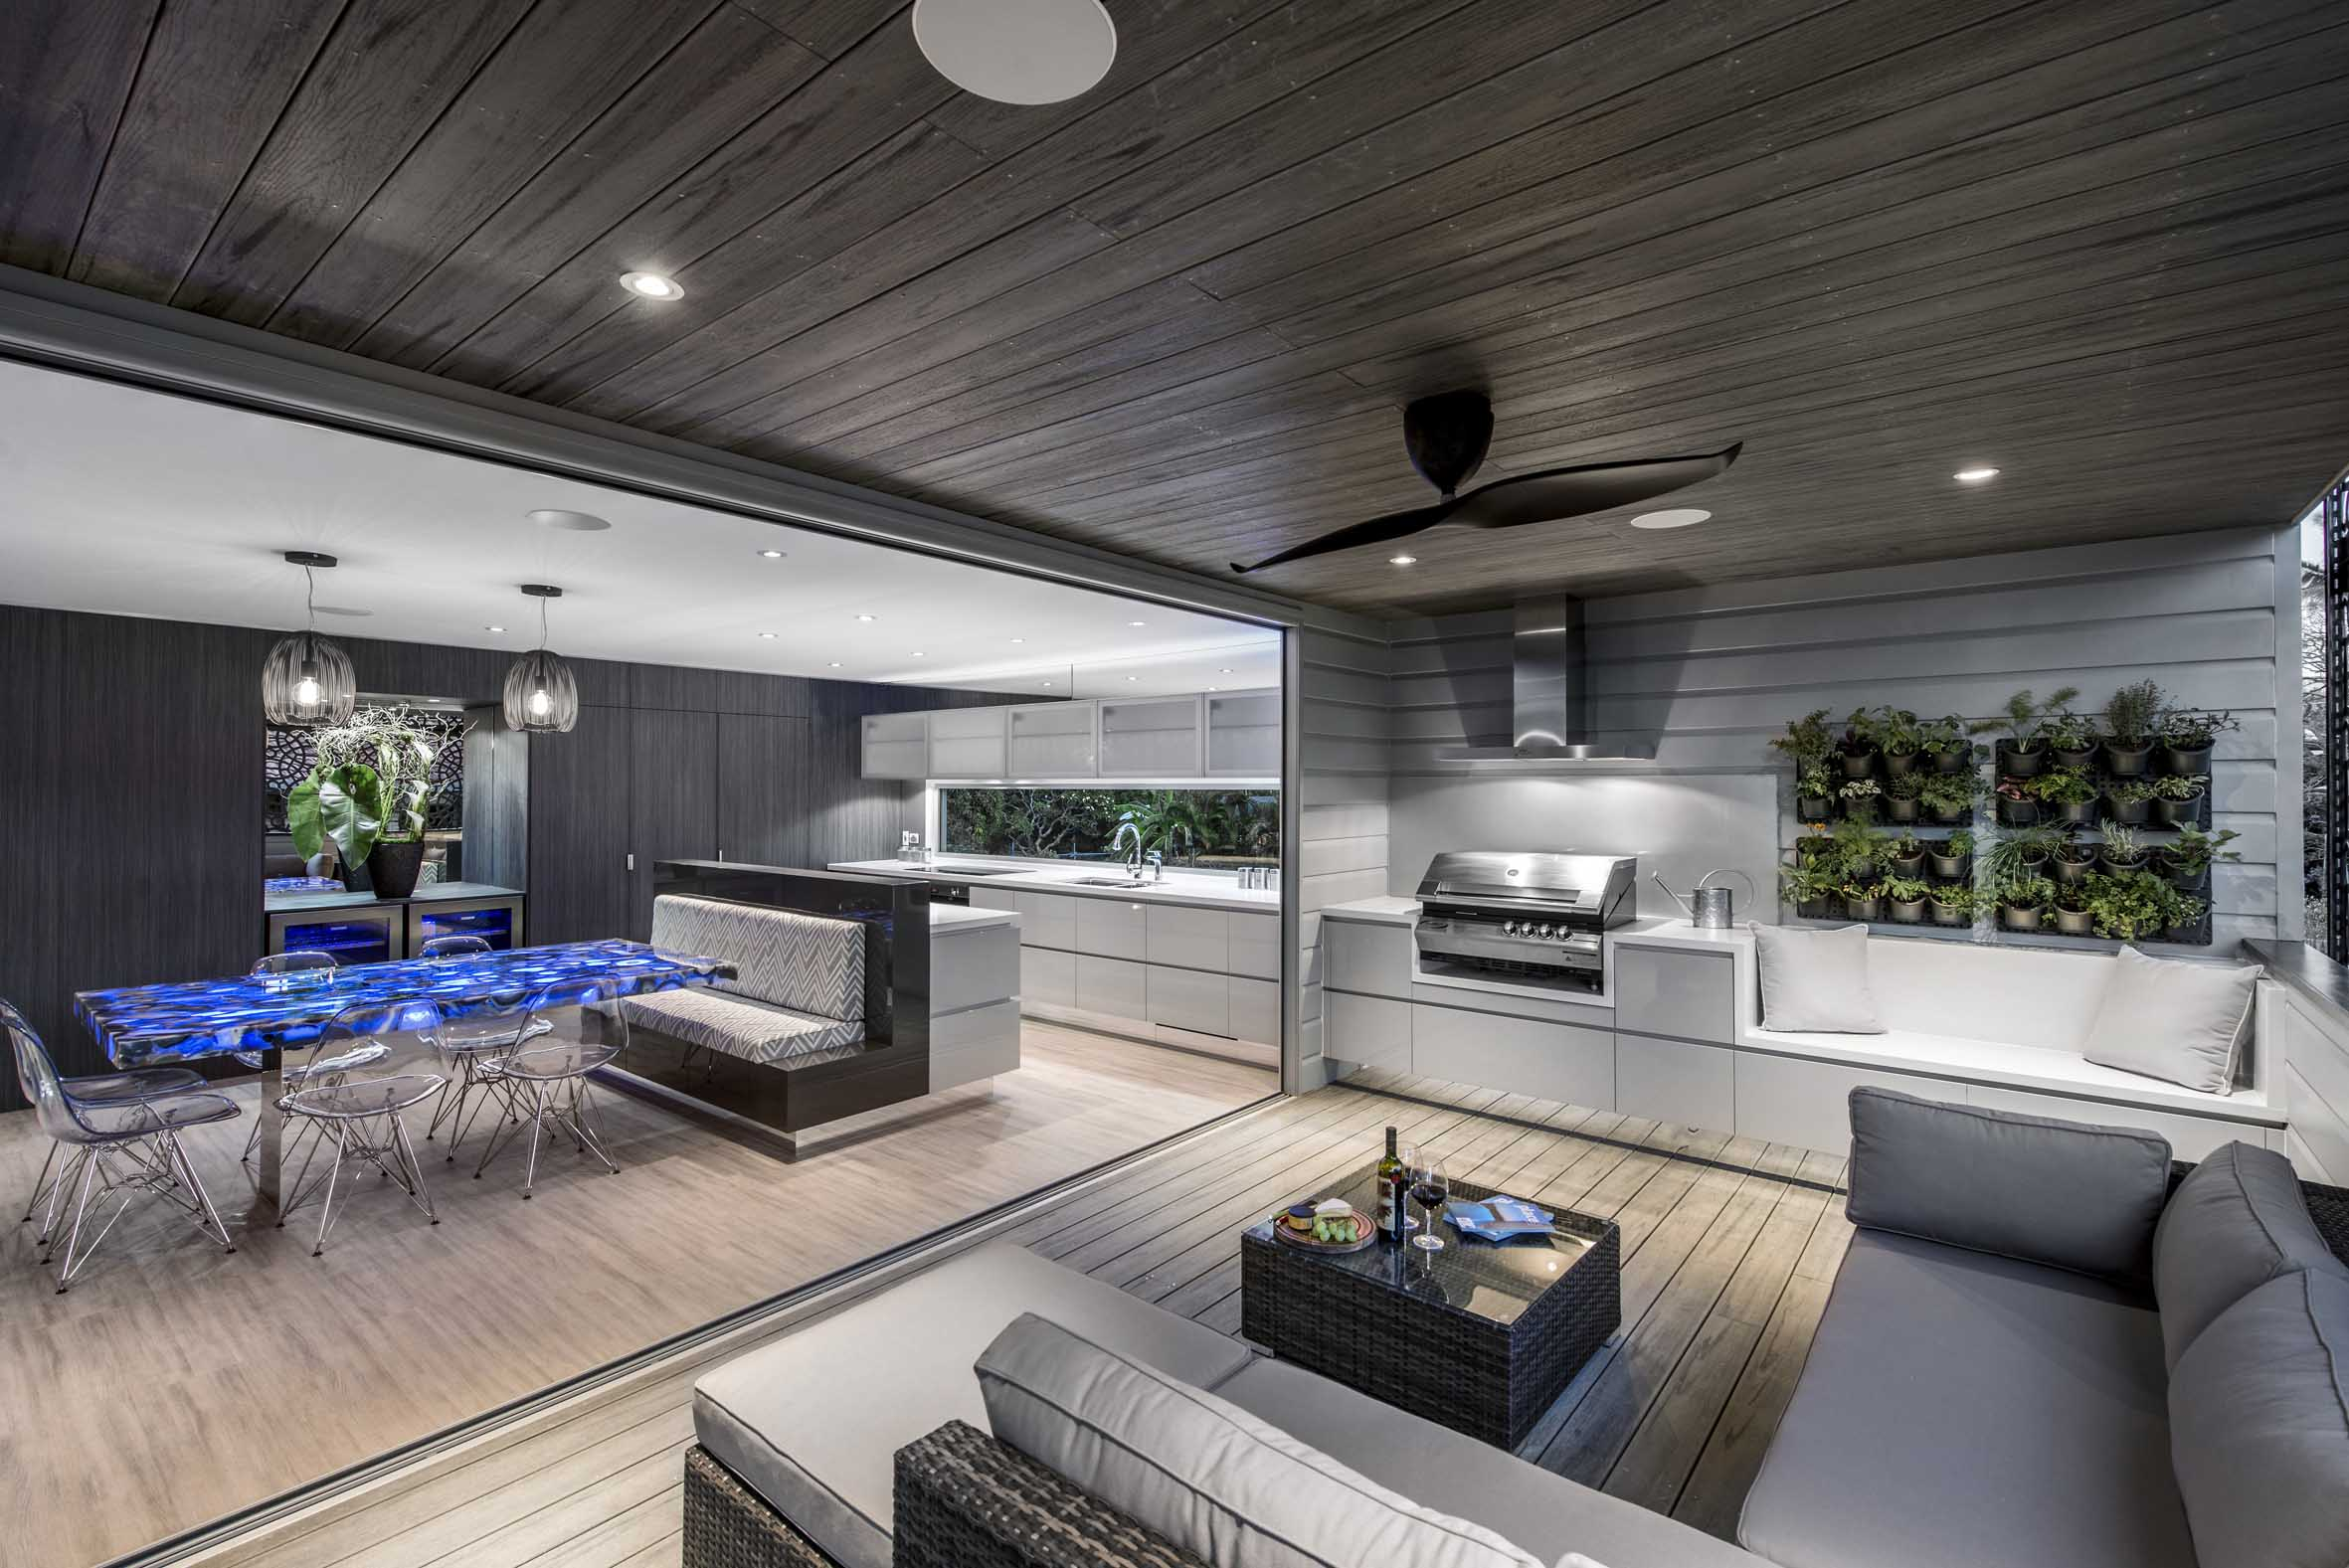 Australian Kitchen Australian Designer Wins International Design Award The Kitchen